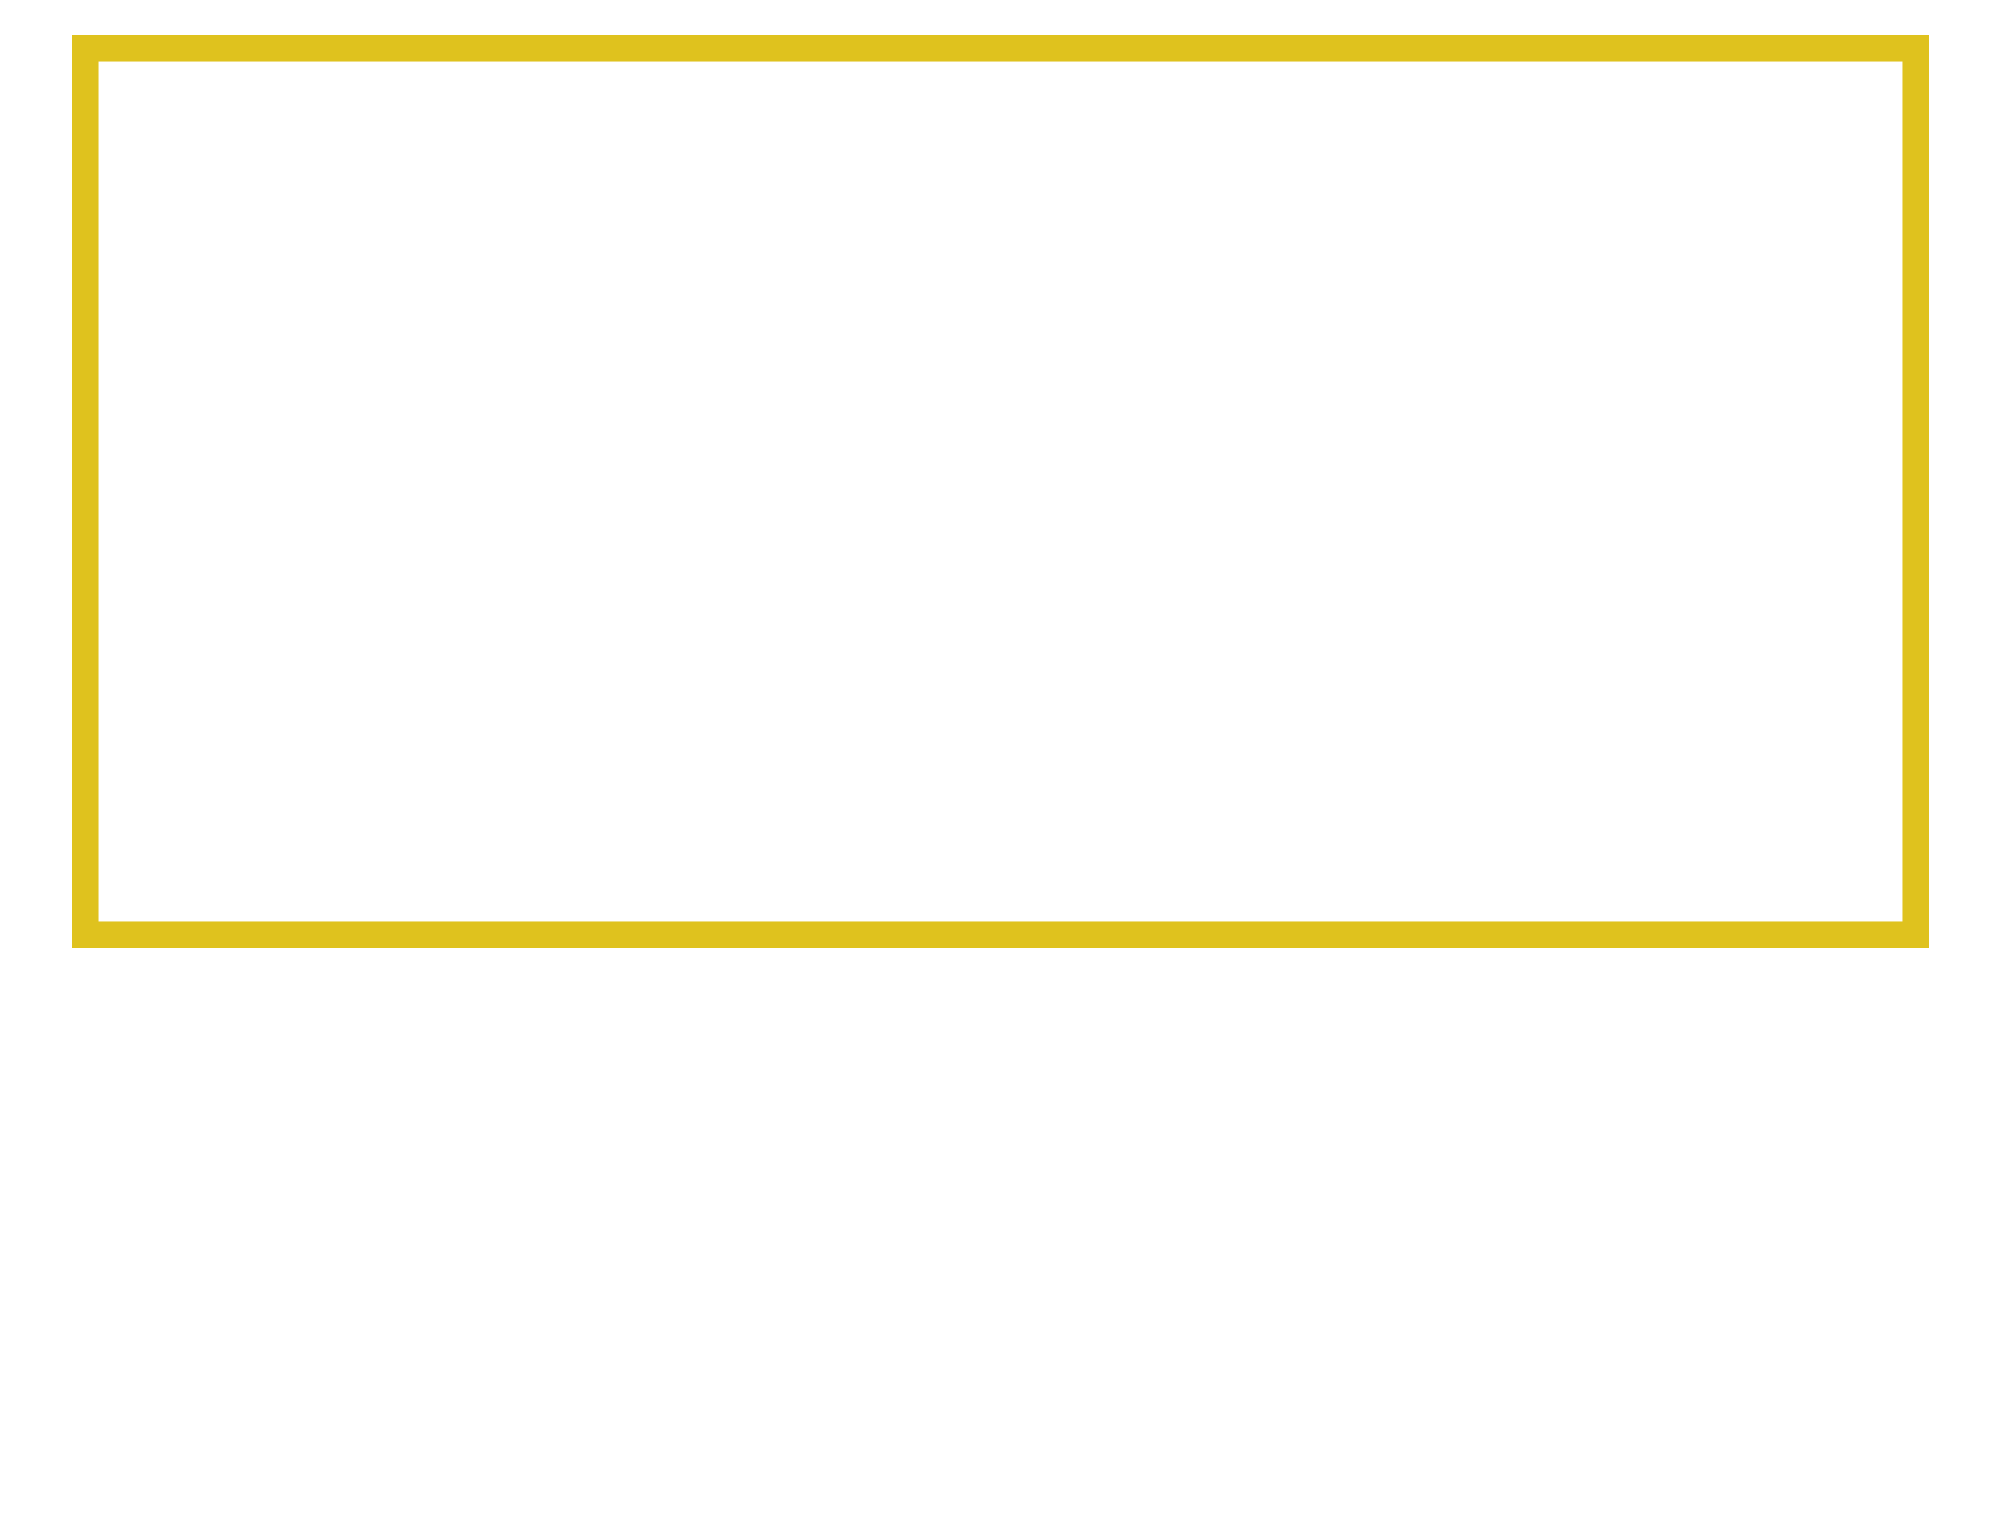 Hugh Marshall Container Services